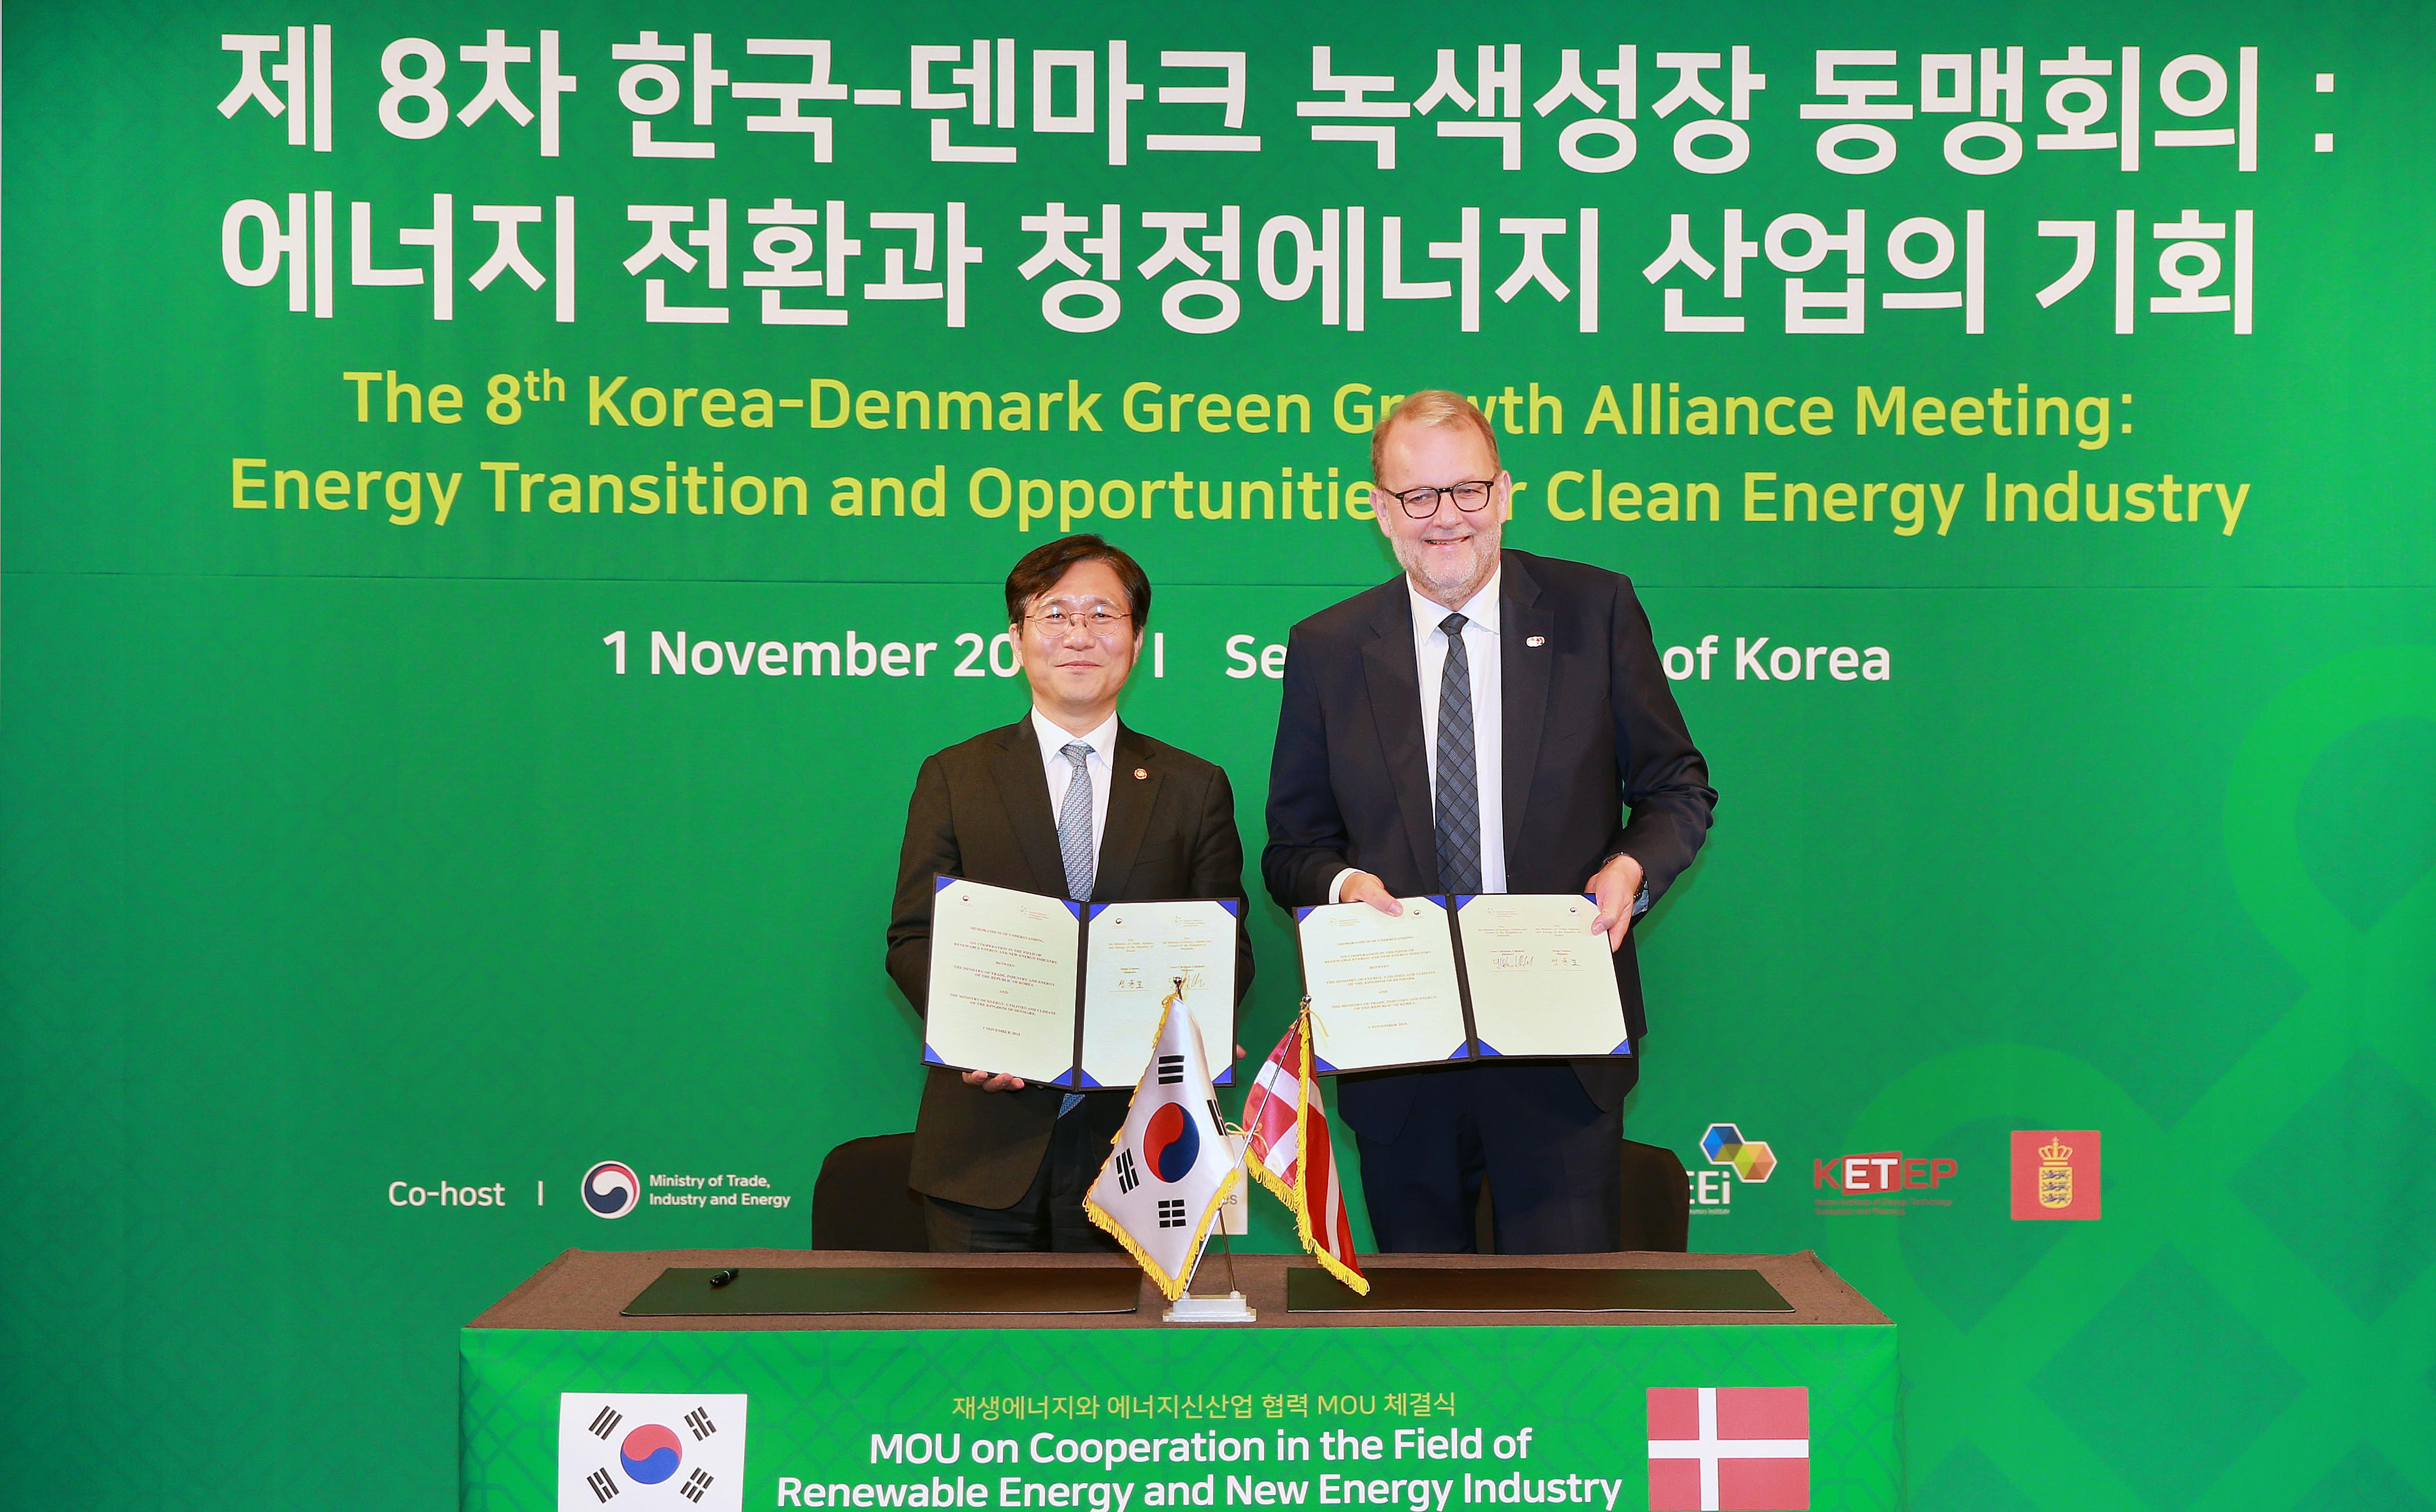 Minister Sung and Danish counterpart seek green energy cooperation